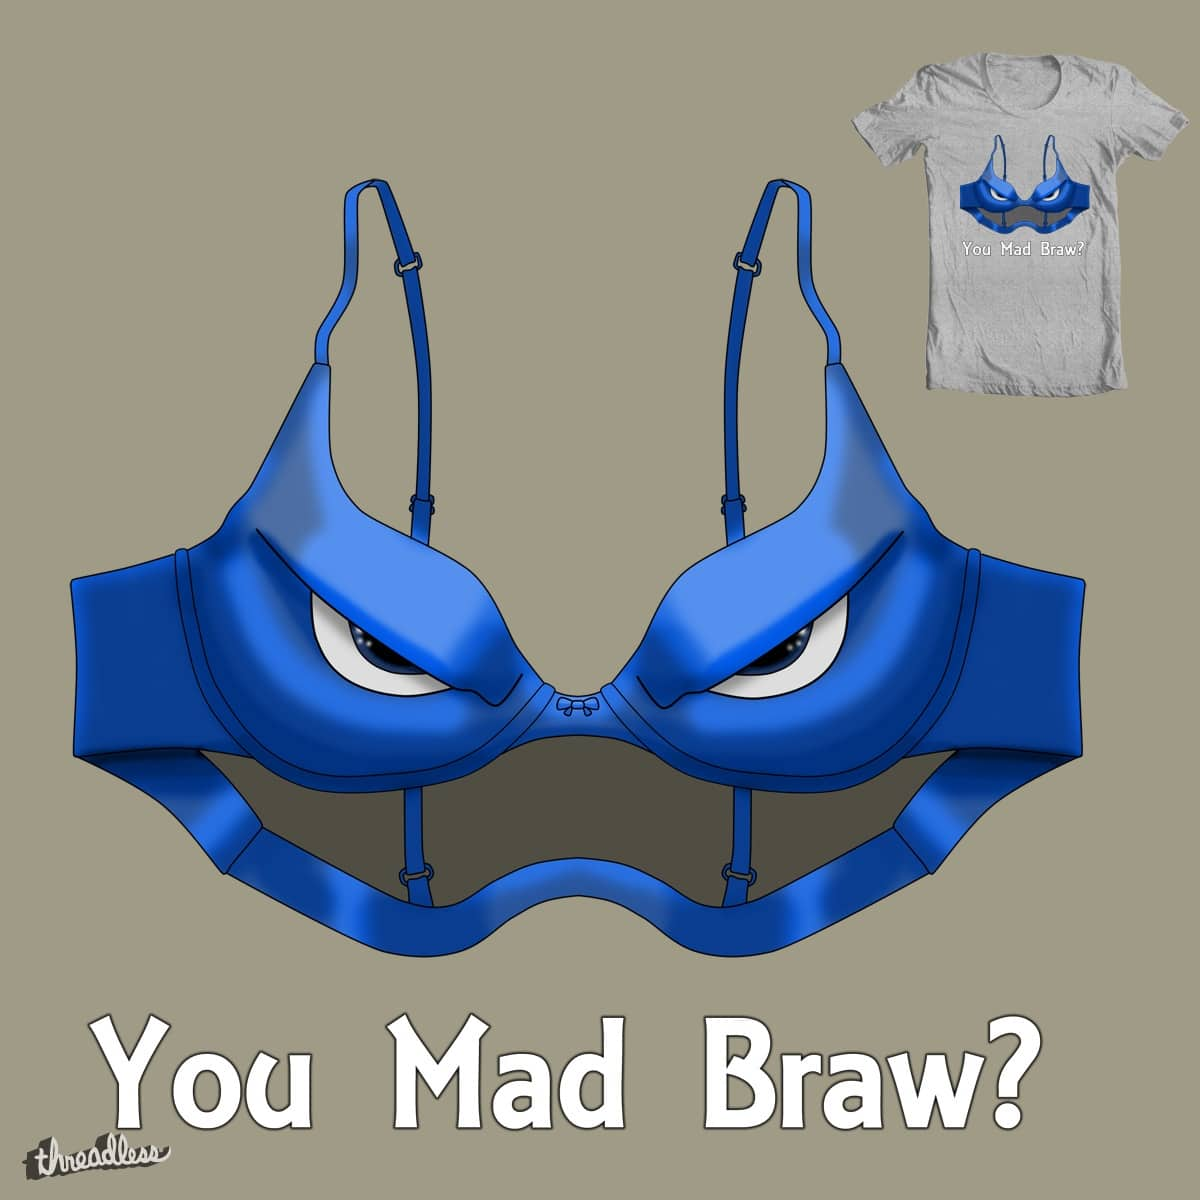 You Mad Braw? by desireatin on Threadless